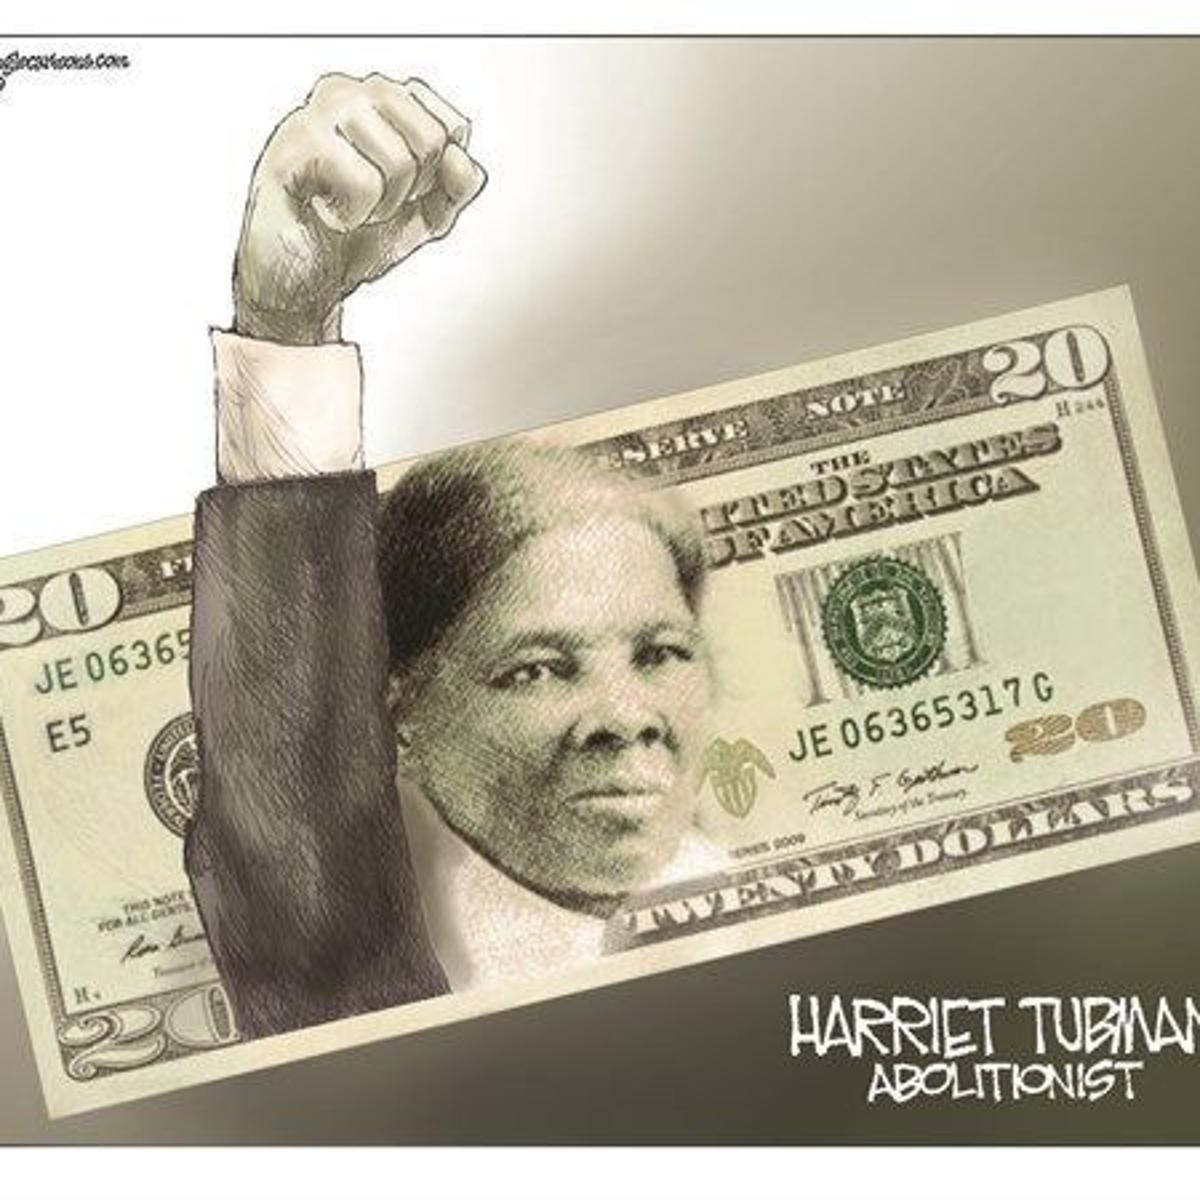 Robinson Harriet Tubman Fits The 20 Bill National Columnists Rapidcityjournal Com